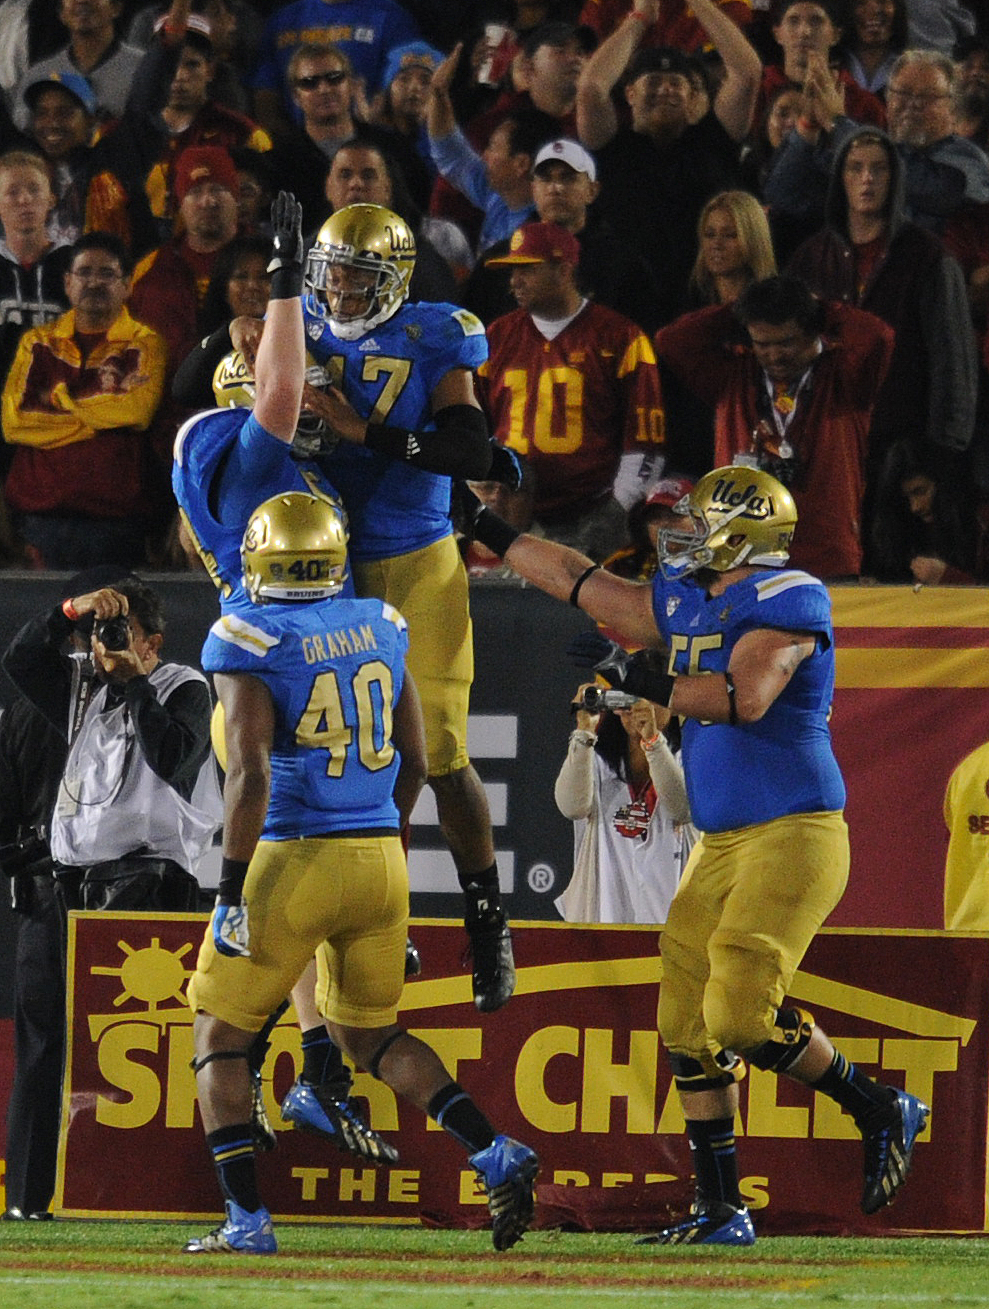 . UCLA QB Brett Hundley celebrates after running in for a touchdown in the 3rd quarter. UCLA defeated USC 35 to 14 in a matchup of cross town rivals at the Los Angeles Memorial Coliseum in Los Angeles, CA.  photo by (John McCoy/Los Angeles Daily News)